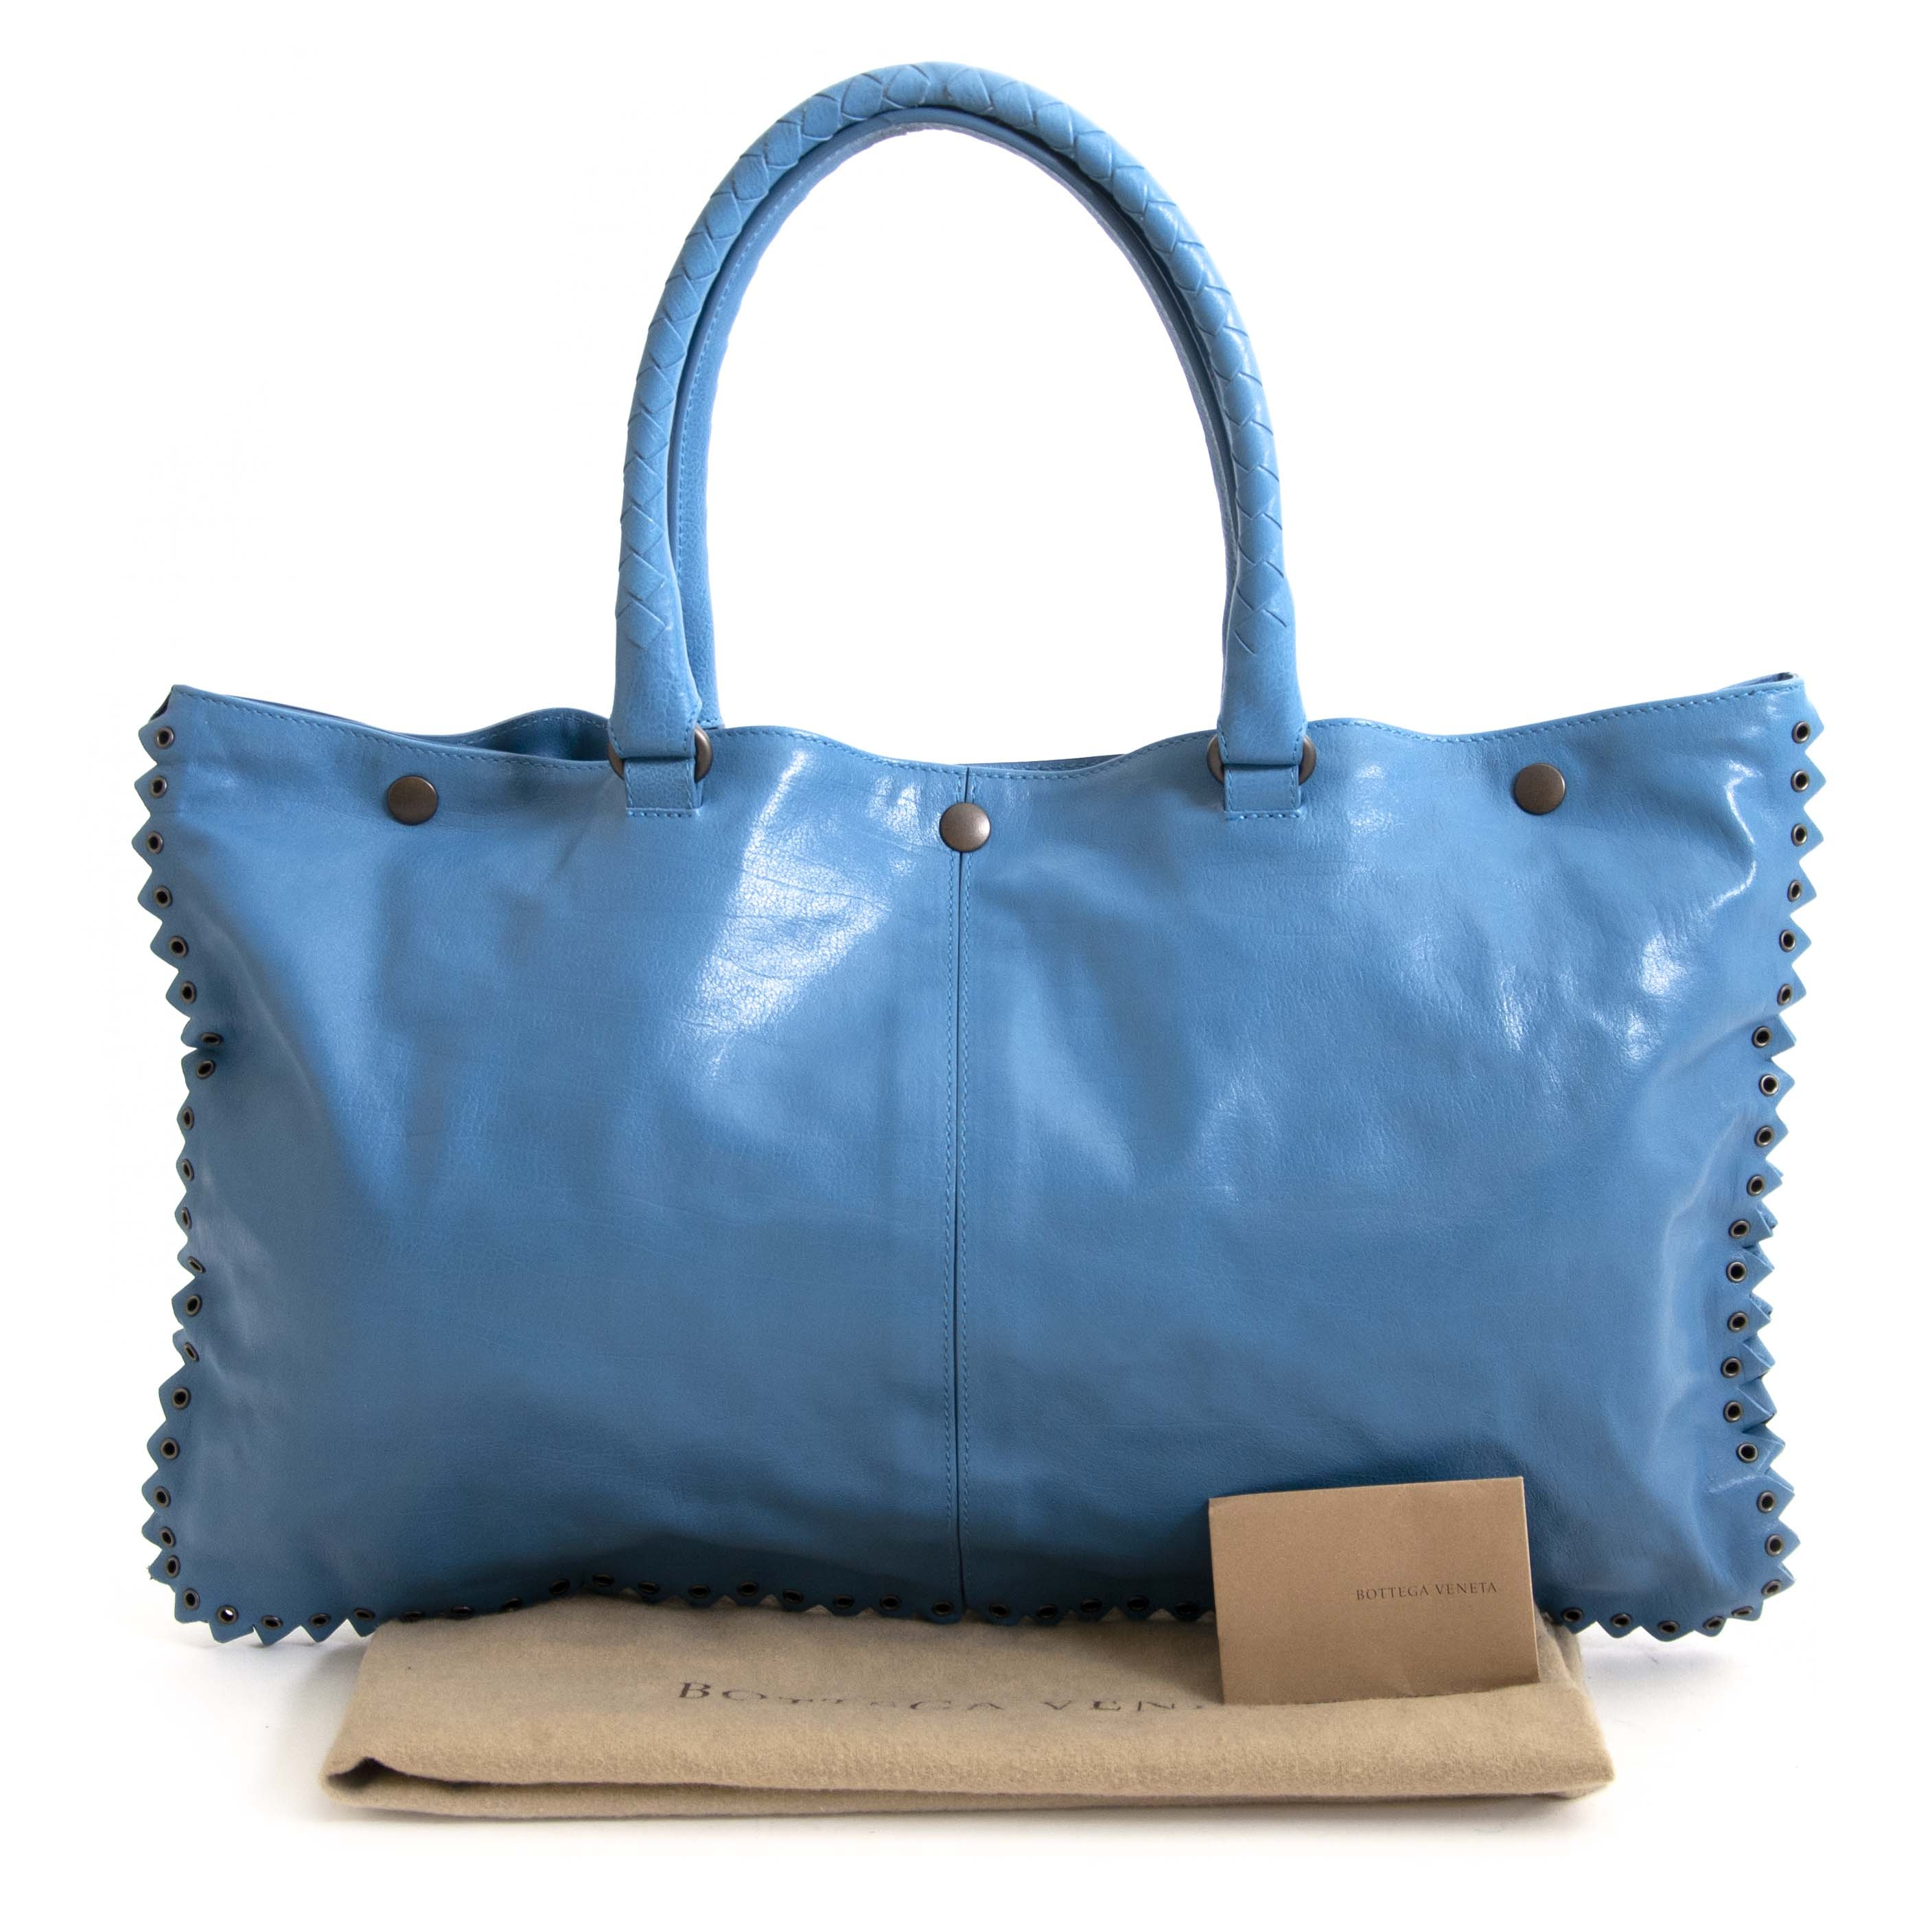 Blue Bottega Veneta Bag with Special Edge Detail. Buy authentic secondhand Bottega Veneta bags at Labellov vintage webshop for the lowest price. Koop authentieke tweedehands Bottega Veneta tassen bij Labellov vintage webshop aan de laagste prijs.